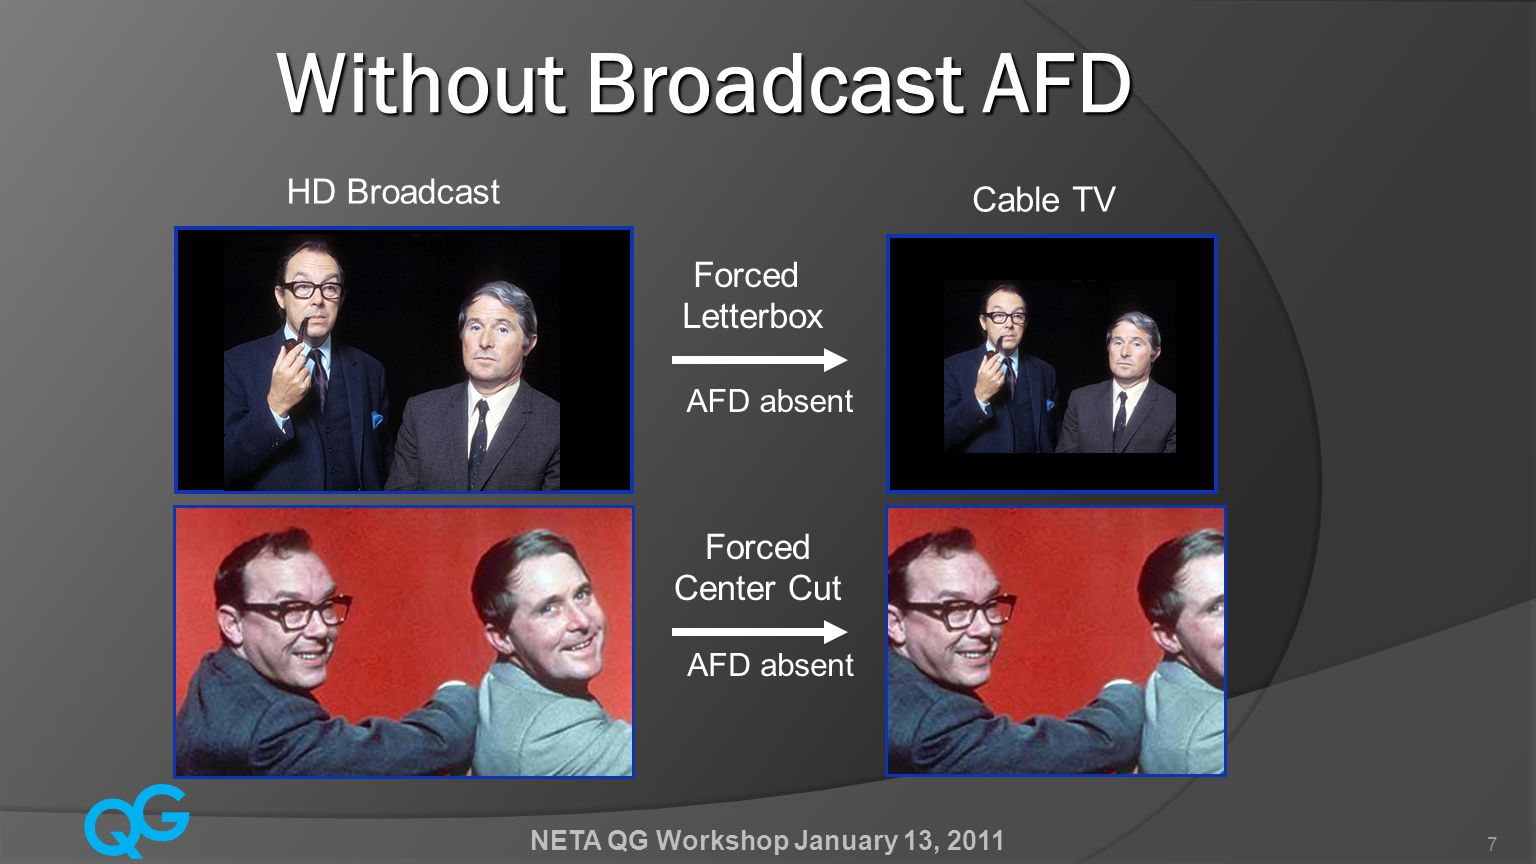 Q G NETA QG Workshop January 13, 2011 8 With Broadcast AFD With Broadcast AFD HD Broadcast Cable TV AFD Controlled Center Cut AFD Controlled Letterbox AFD 1000 AFD 1001